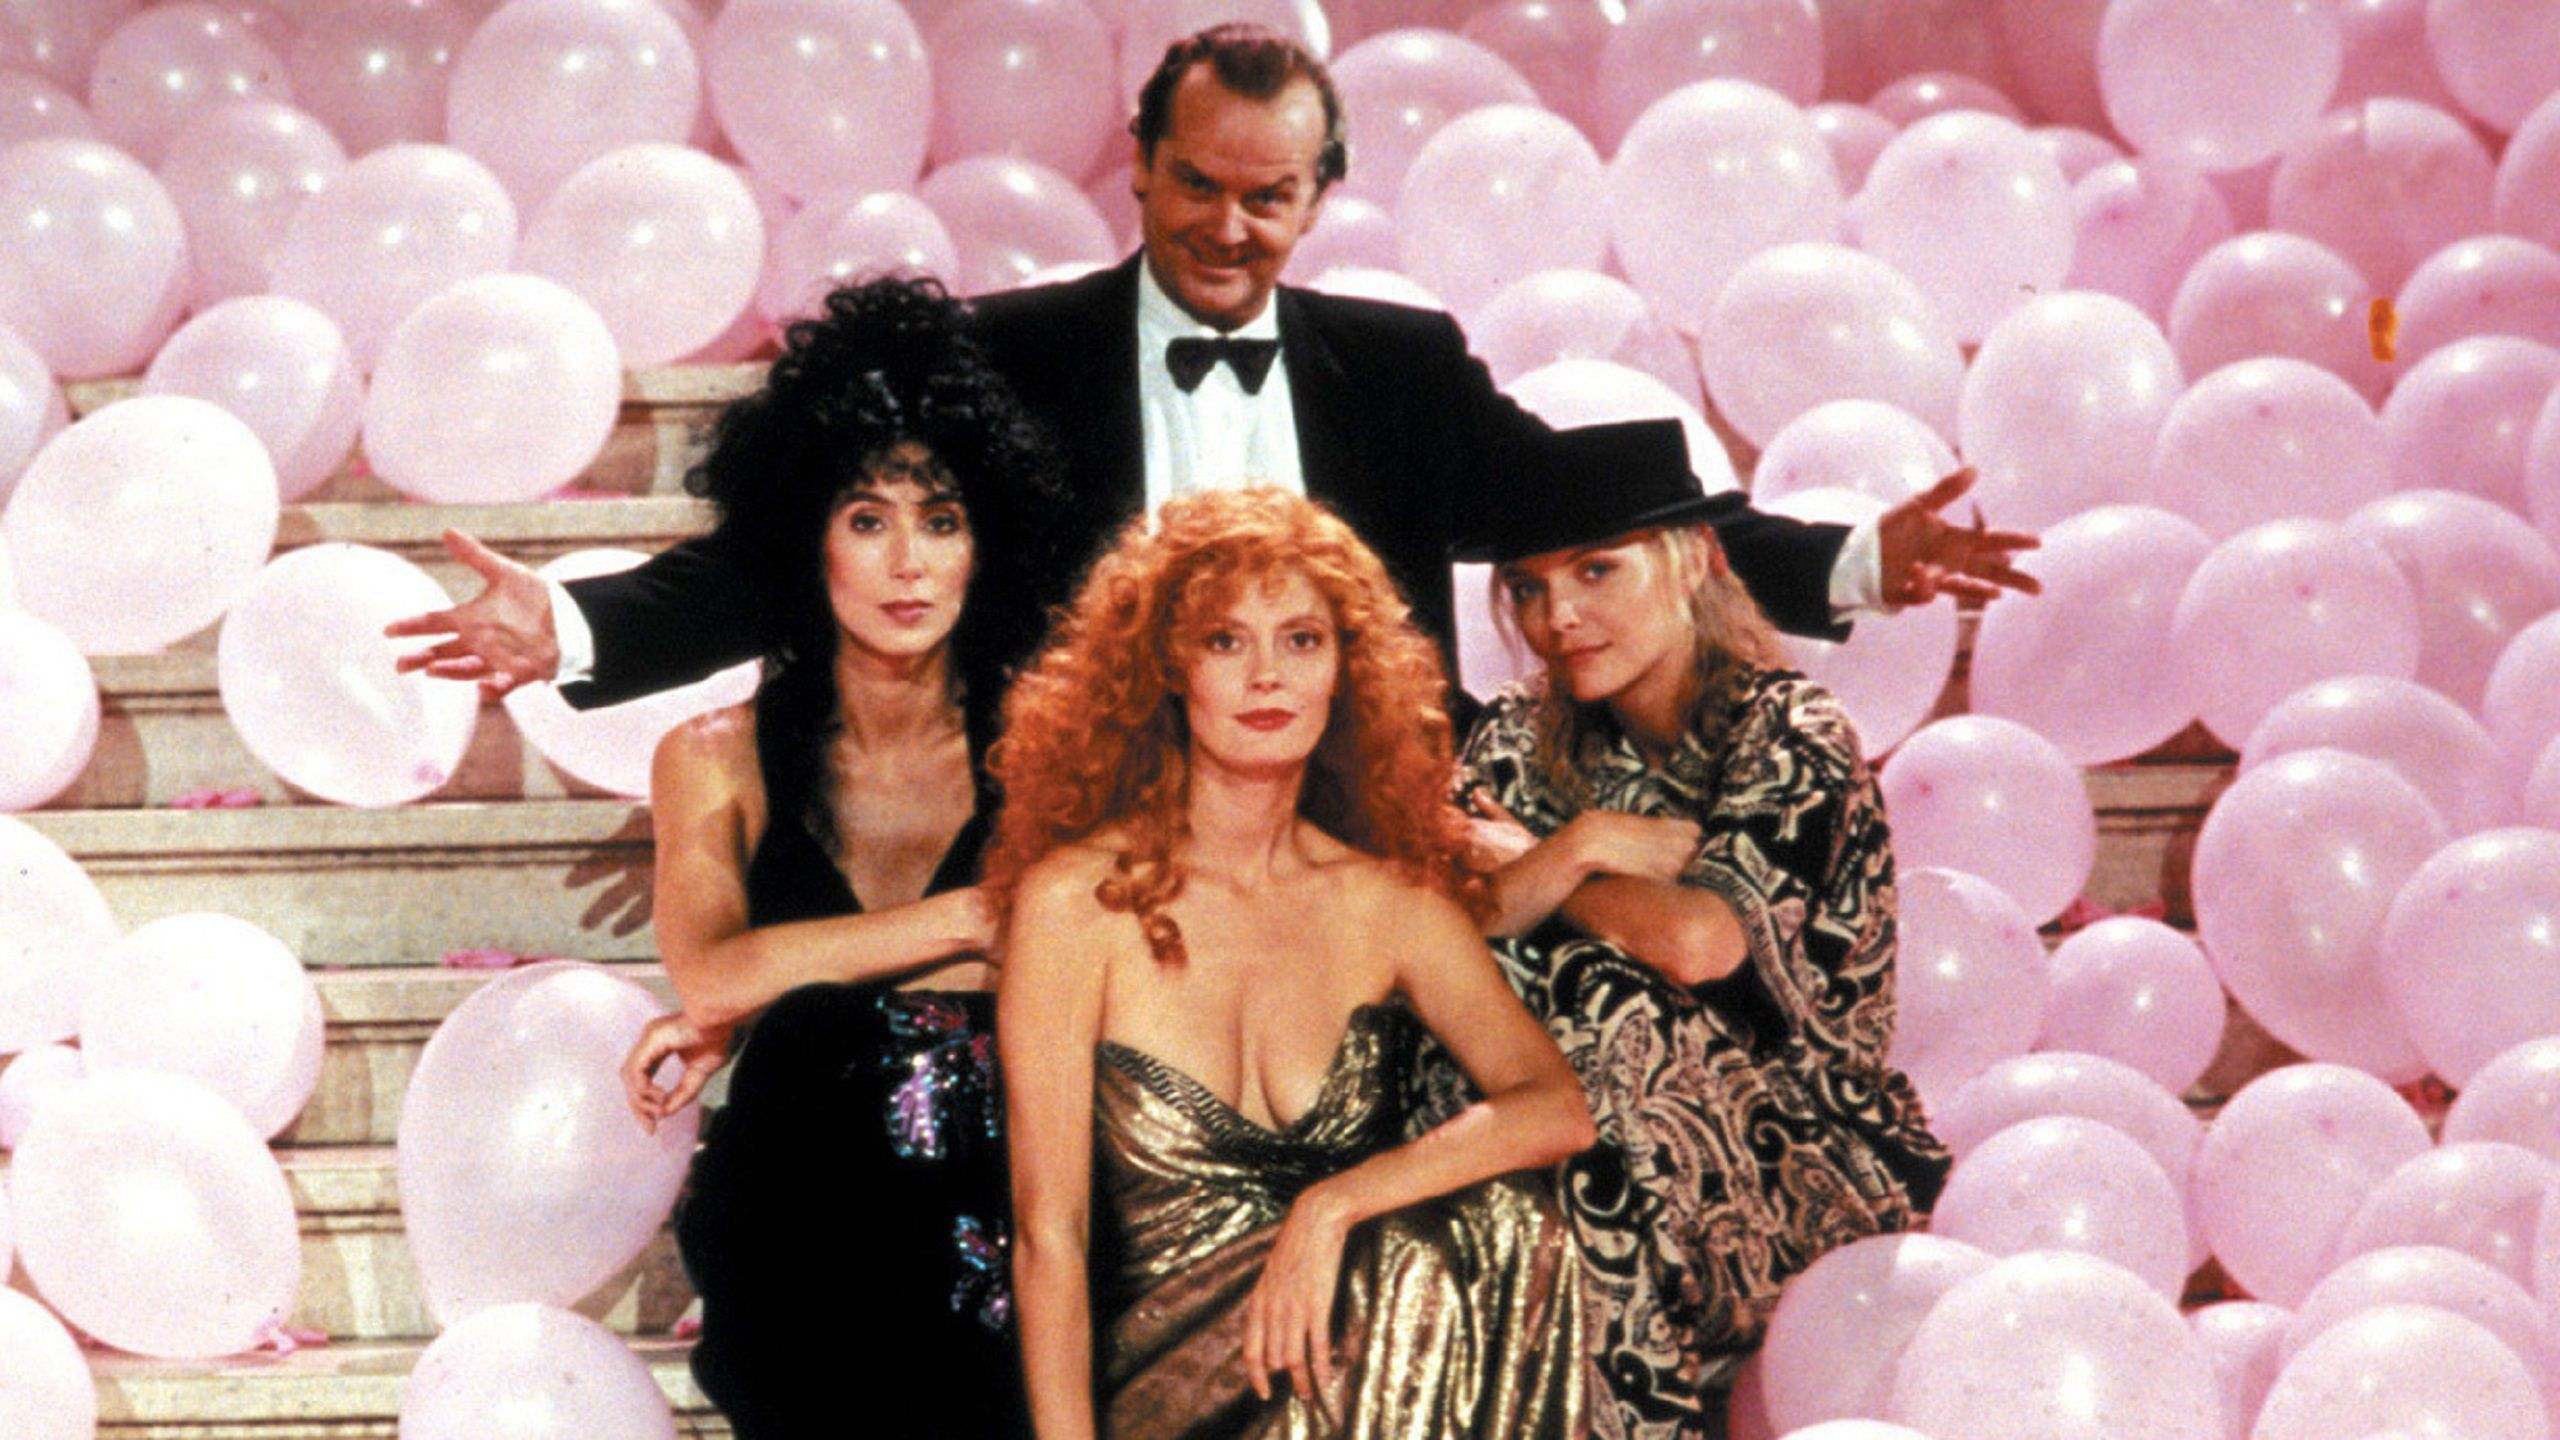 Le Streghe di Eastwick - Witches of Eastwick (1987) pink balloons